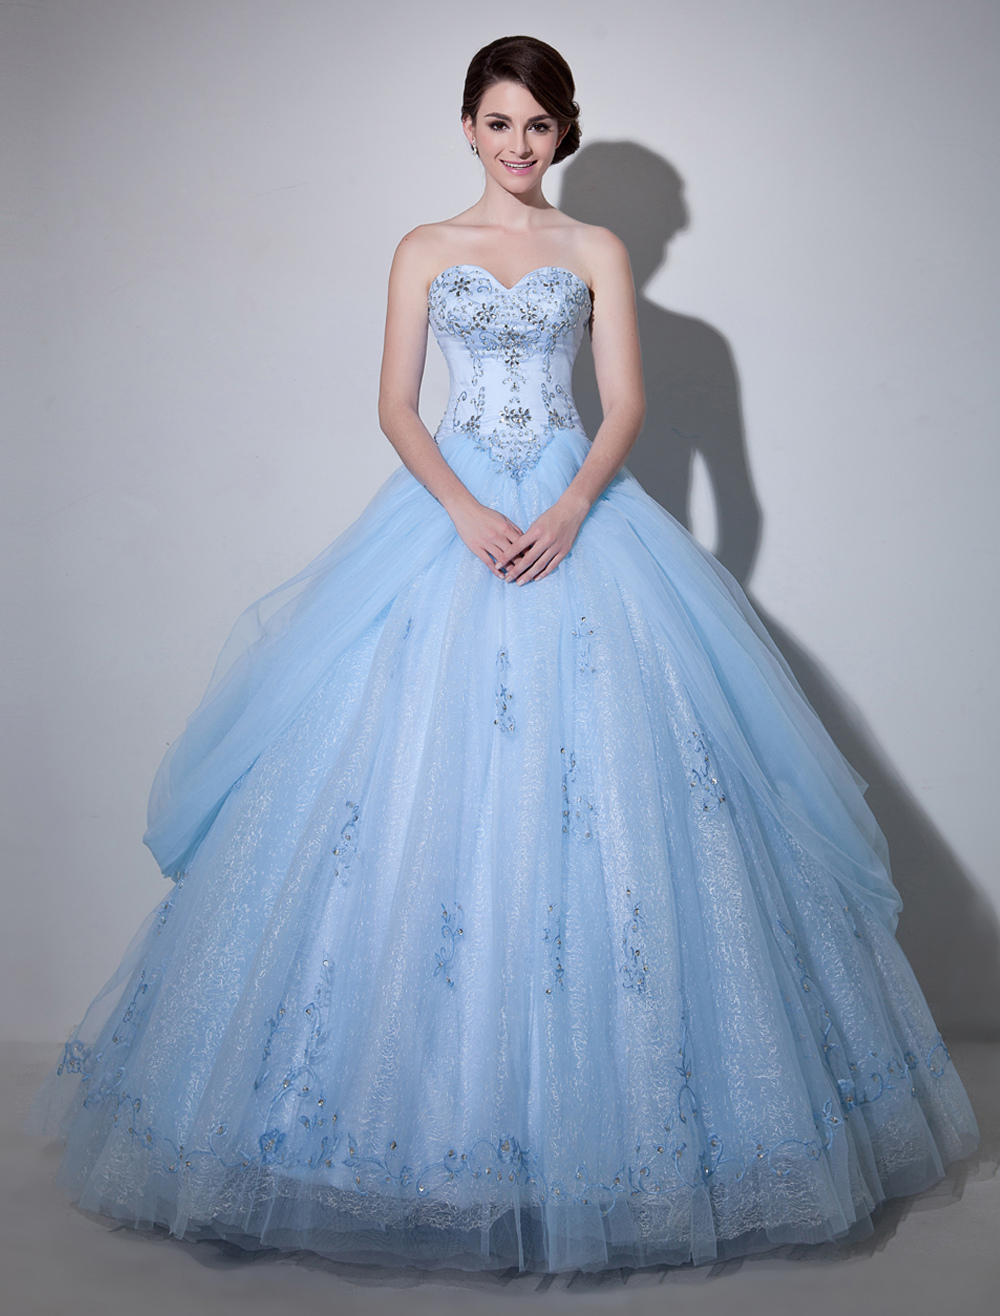 Blue Wedding Dress Lace Ball Gown Floor-Length Sweetheart Strapless Beading Princess Bridal Gown Milanoo